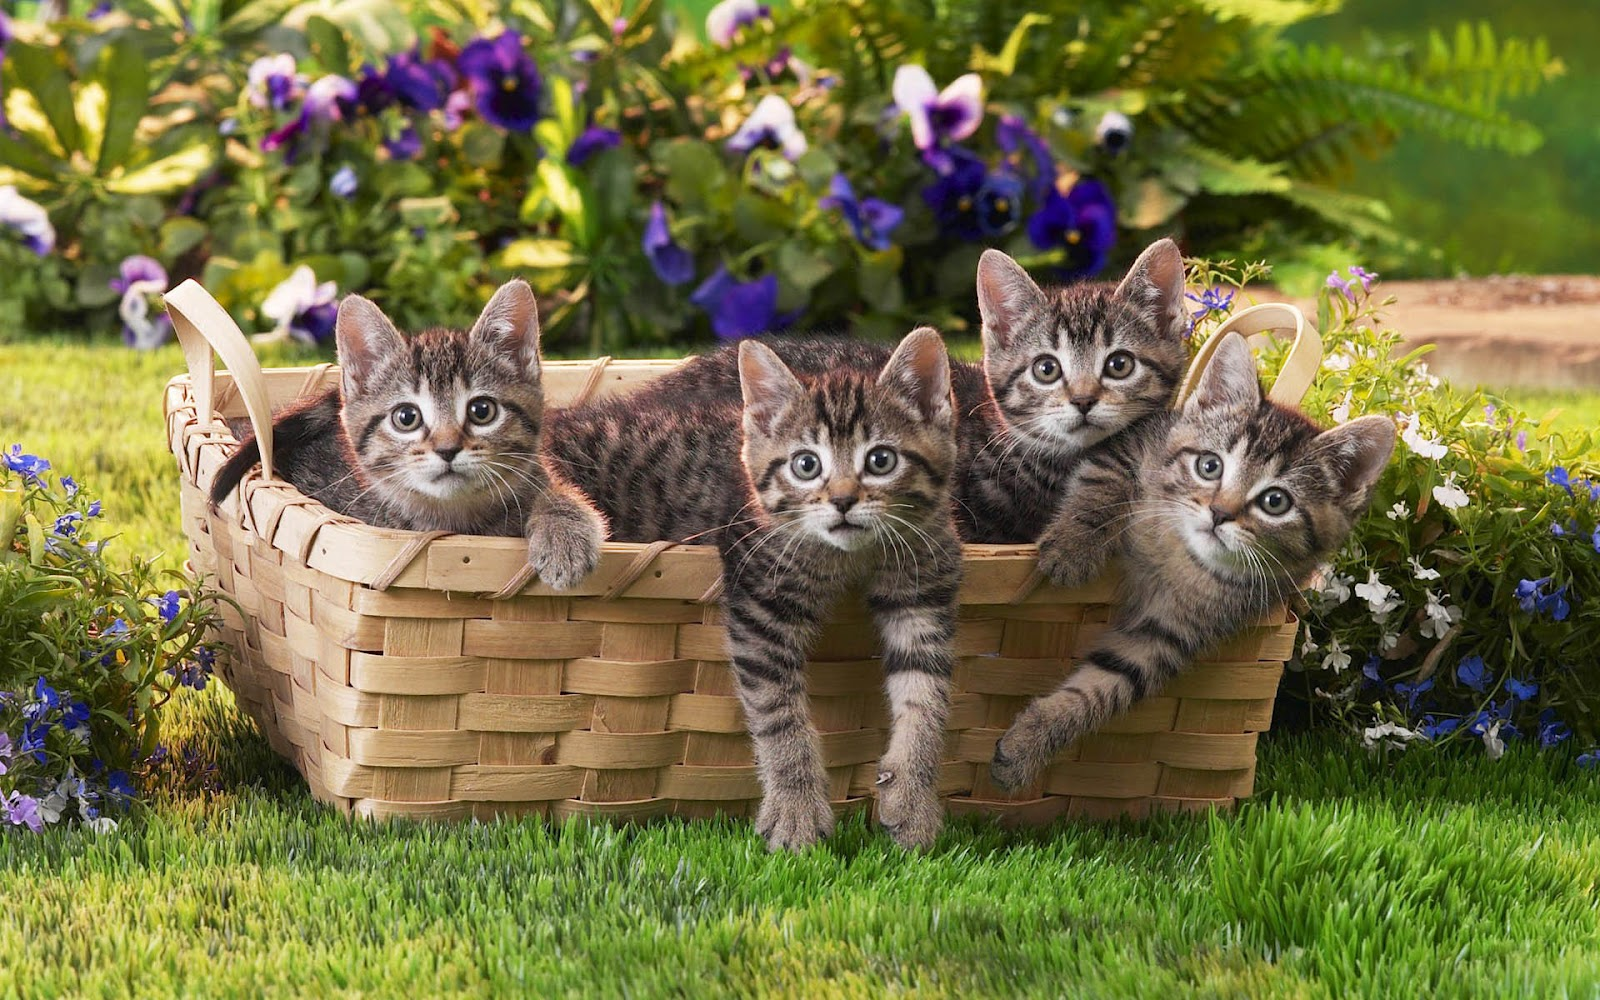 Funny Photo With Cute Little Cats In A Basket